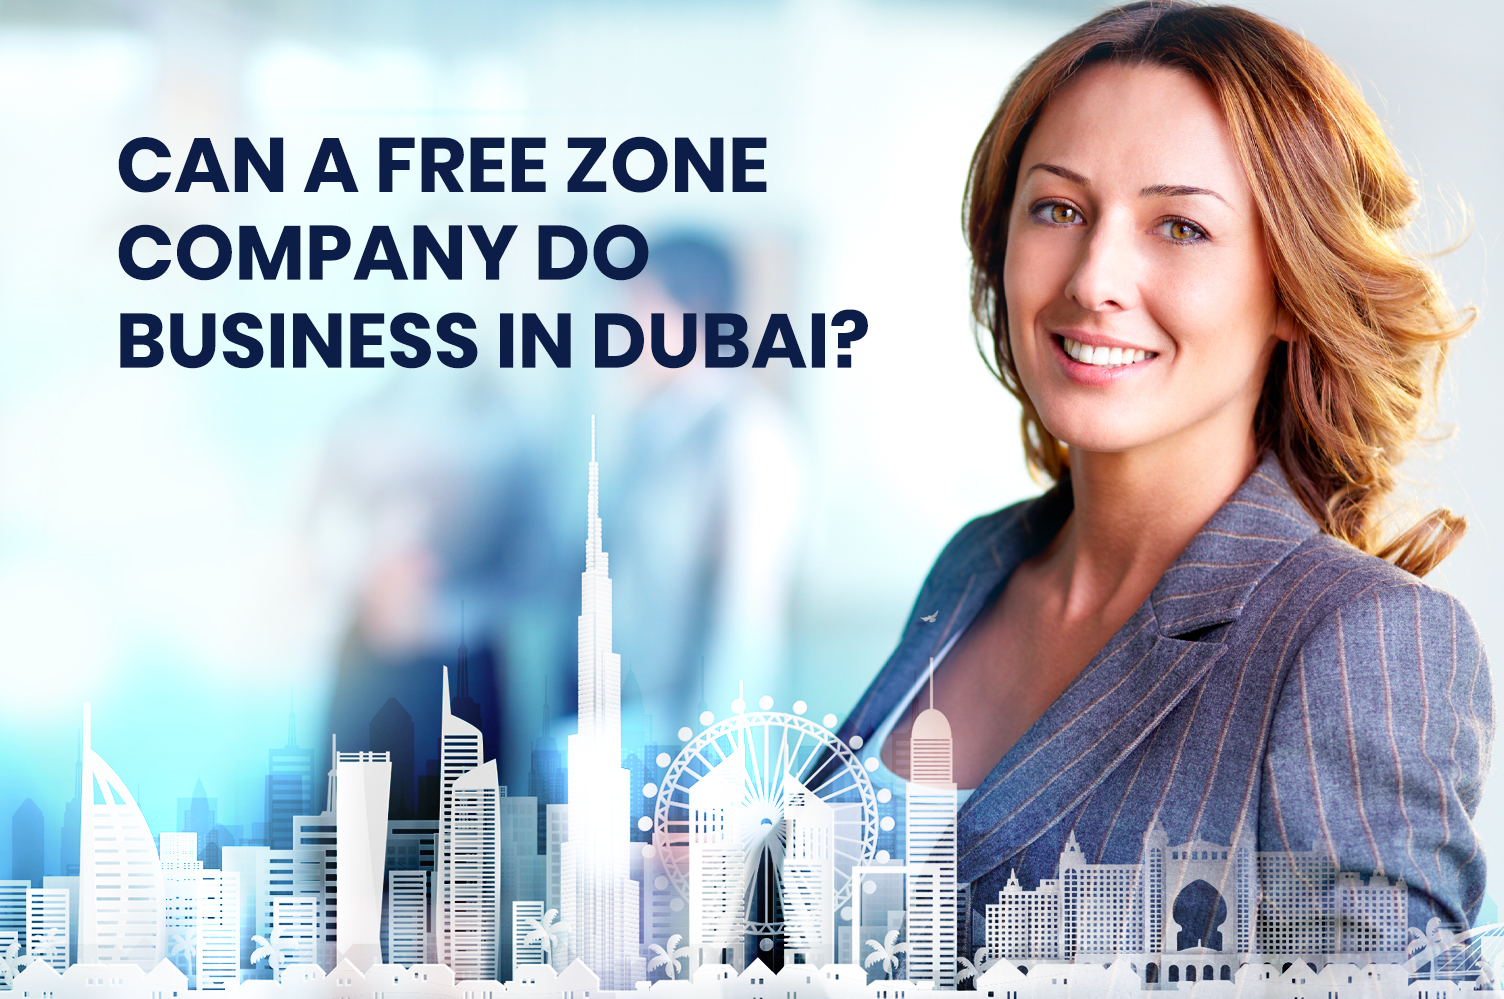 Can a Free zone company do business in Dubai?